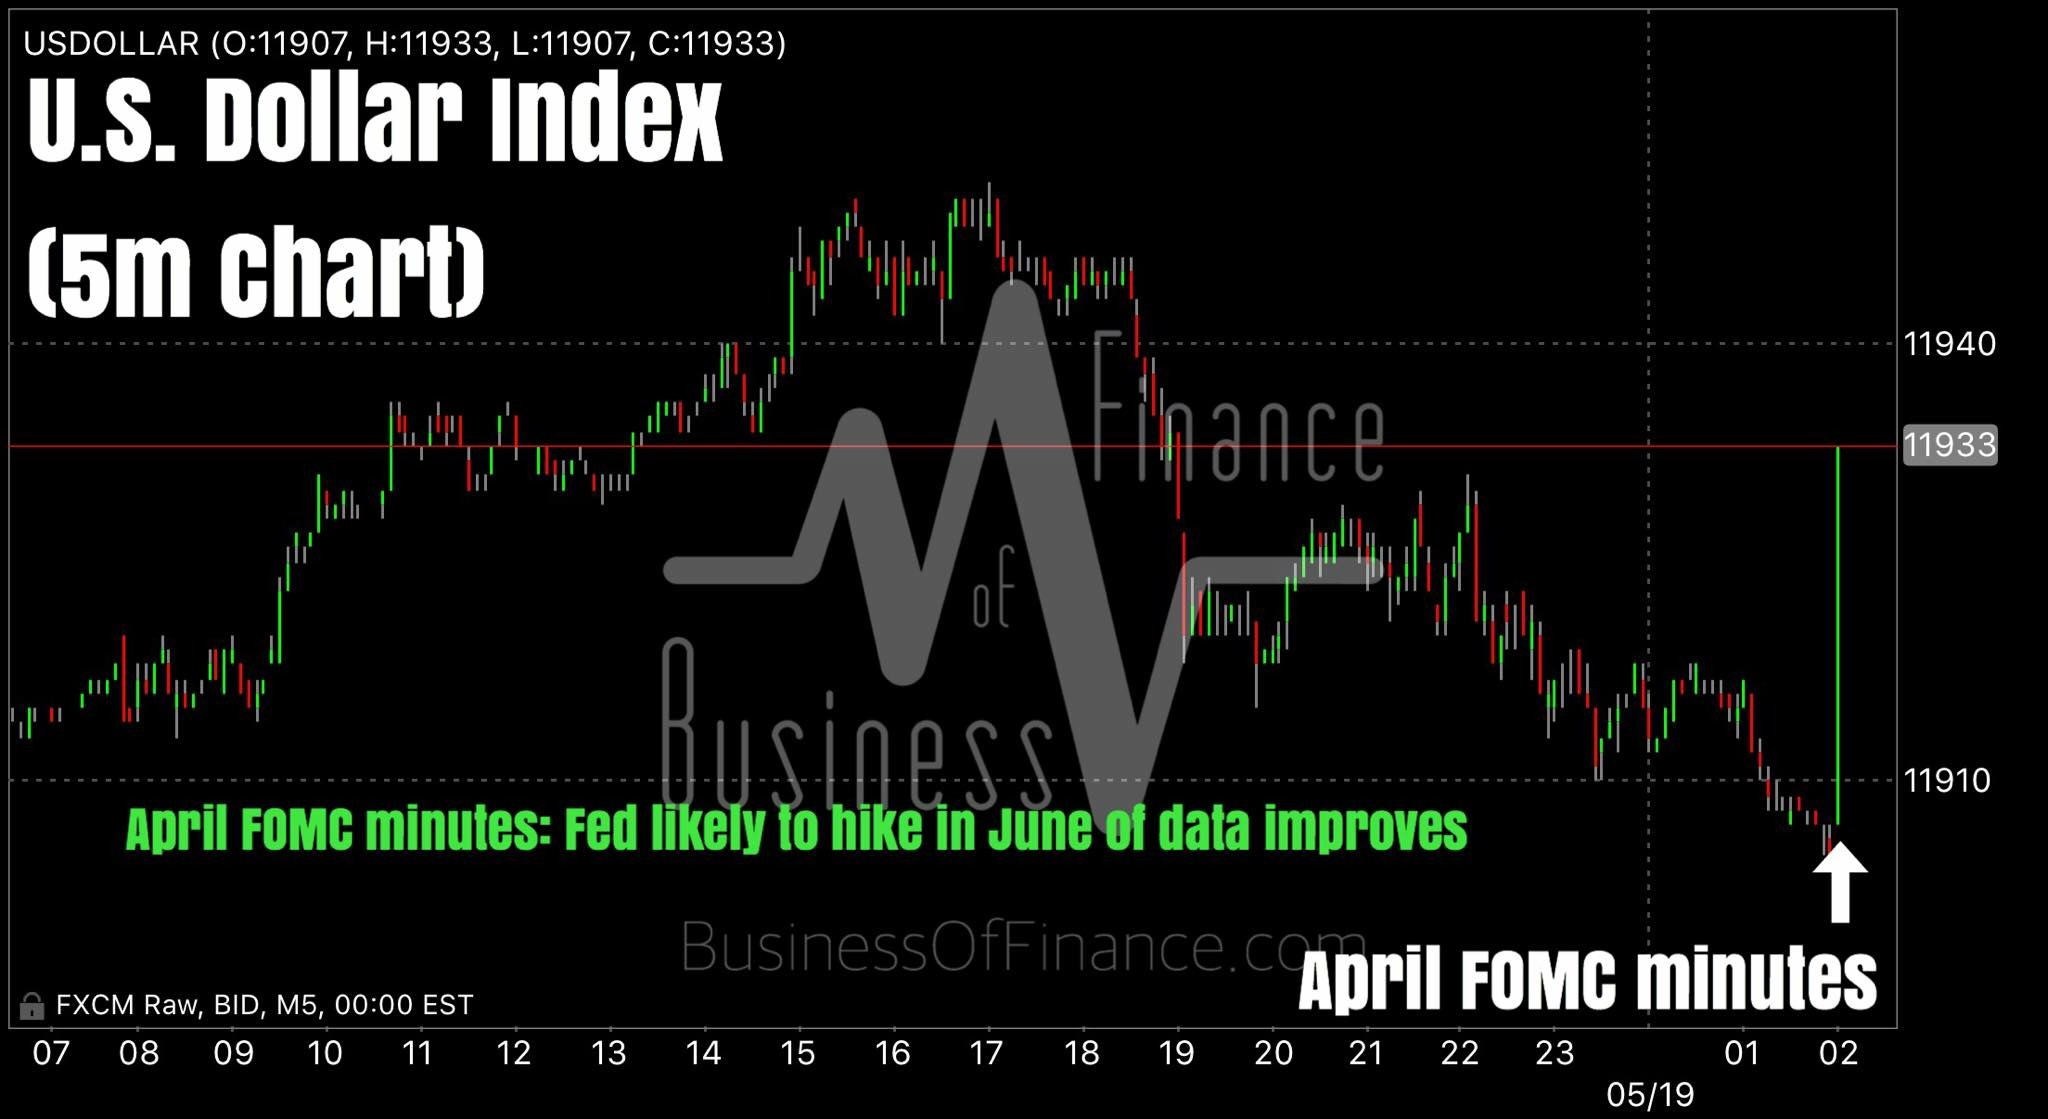 """""""April FOMC minutes: Fed likely to hike rates in June should data improve.    Dollar is higher post release.    Bulletin headlines:    MOST FED OFFICIALS SAW JUNE HIKE `LIKELY' IF ECONOMY WARRANTED    FED: RANGE OF VIEWS ON WHETHER DATA WOULD SUPPORT JUNE HIKE    FED: MANY OFFICIALS NOTED GLOBAL RISKS NEED `CLOSE MONITORING'    FED: OFFICIALS WANTED TO KEEP `OPTIONS OPEN' FOR JUNE    Key pointers:    Most participants judged that if incoming data were consistent with economic growth picking up in the second quarter, labor market conditions continuing to strengthen, and inflation making progress toward the Committee's 2 percent objective, then it likely would be appropriate for the Committee to increase the target range for the federal funds rate in June.    Many participants noted that downside risks emanating from developments abroad, while reduced, still warranted close monitoring. For these reasons, participants generally saw maintaining the target range for the federal funds rate at ¼ to ½ percent at this meeting and continuing to assess developments carefully as consistent with setting policy in a data-dependent manner and as leaving open the possibility of an increase in the federal funds rate at the June FOMC meeting.    Some members expressed concern that the likelihood implied by market pricing that the Committee would increase the target range for the federal funds rate at the June meeting might be unduly low.    Many participants noted that downside risks emanating from developments abroad, while reduced, still warranted close monitoring.    Regarding the possibility of adjustments in the stance of policy at the next meeting, members generally judged it appropriate to leave their policy options open and maintain the flexibility to make this decision based on how the incoming data and developments shaped their outlook for the labor market and inflation as well as their evolving assessments of the balance of risks around that outlook.    Some participants n"""